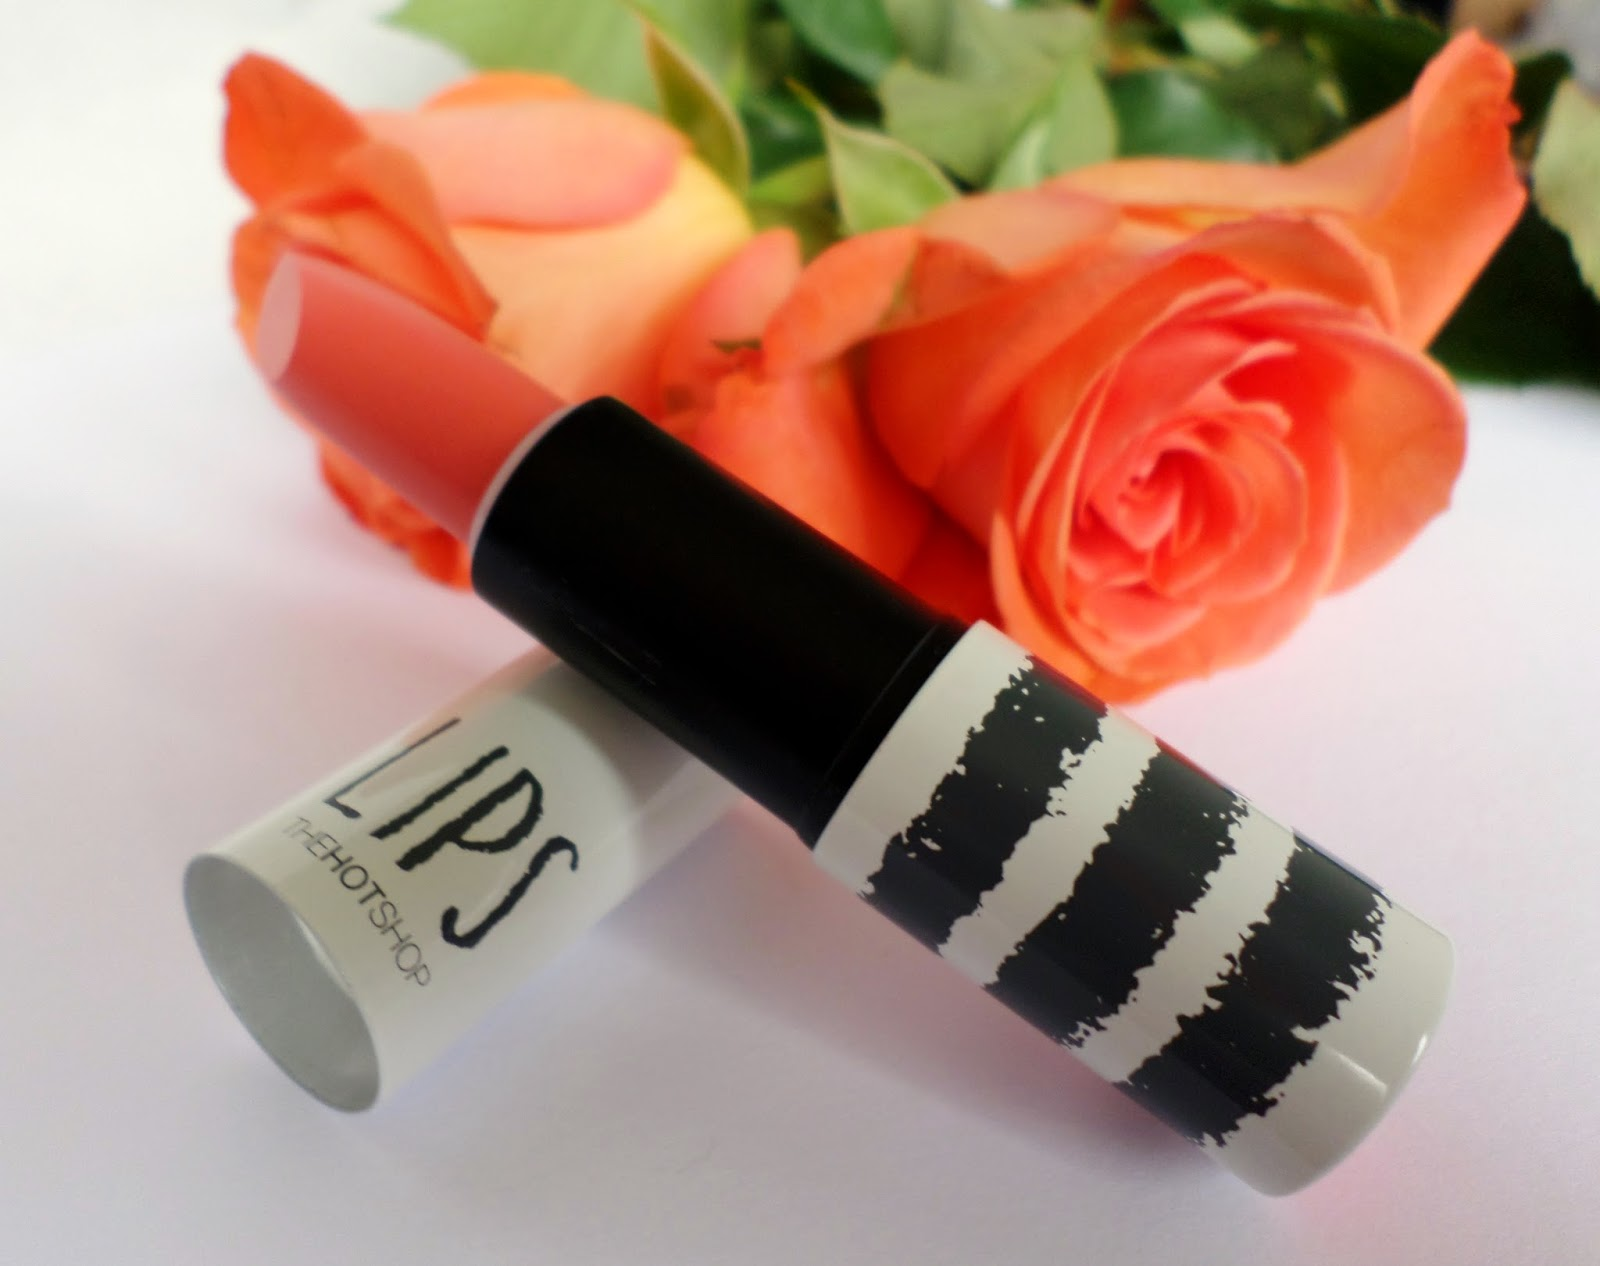 Born Pretty Velvet Finish Moisturising Lipstick in the Shade 01